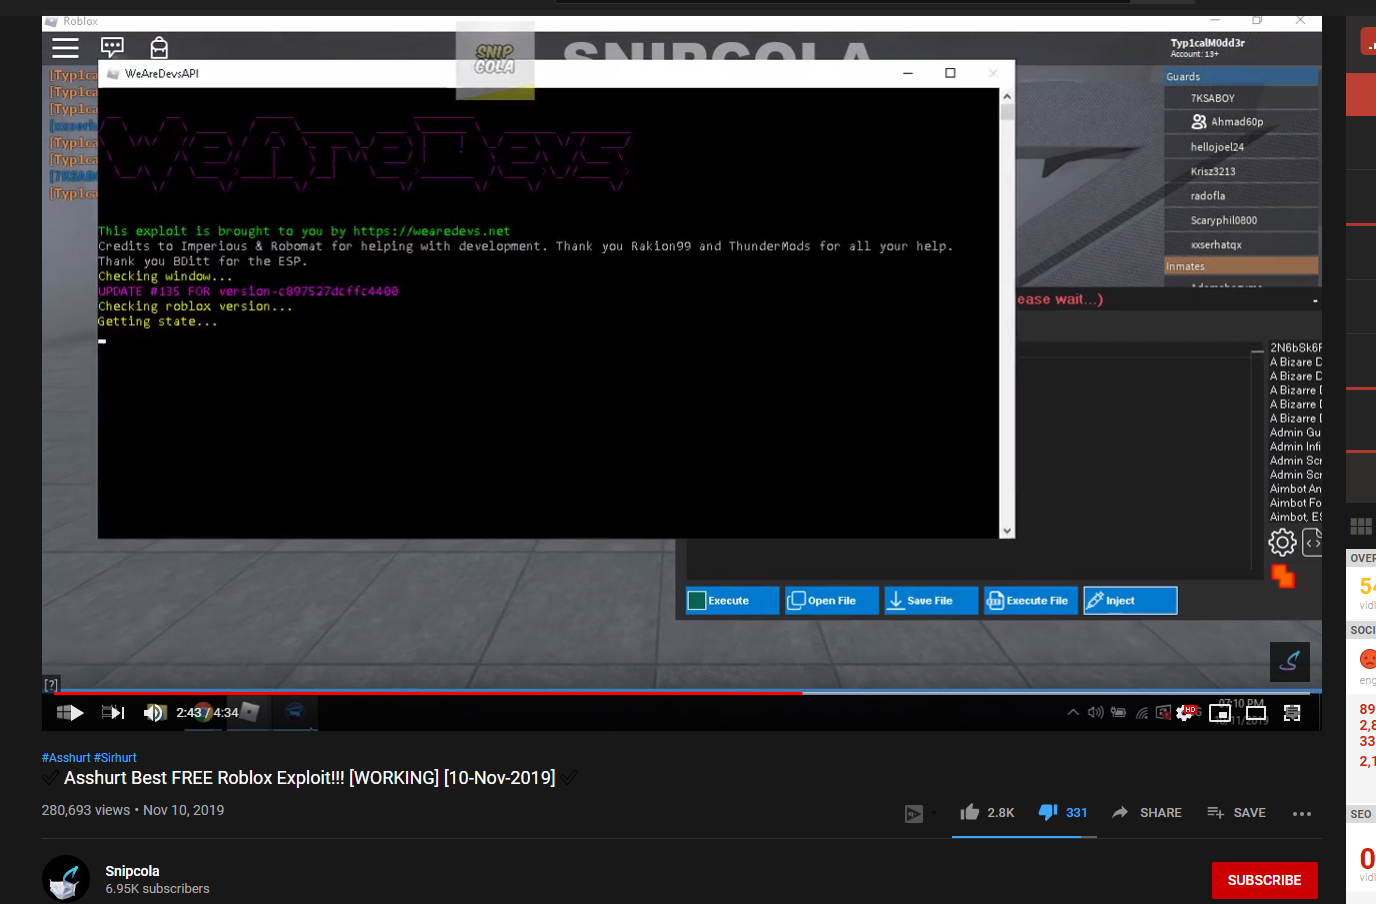 Hexus Roblox Download Free Roblox Injector Cw Snipcola Aka Paradox Exploit Dev Is Discord Token Grabber And Could Be Ip Grabber